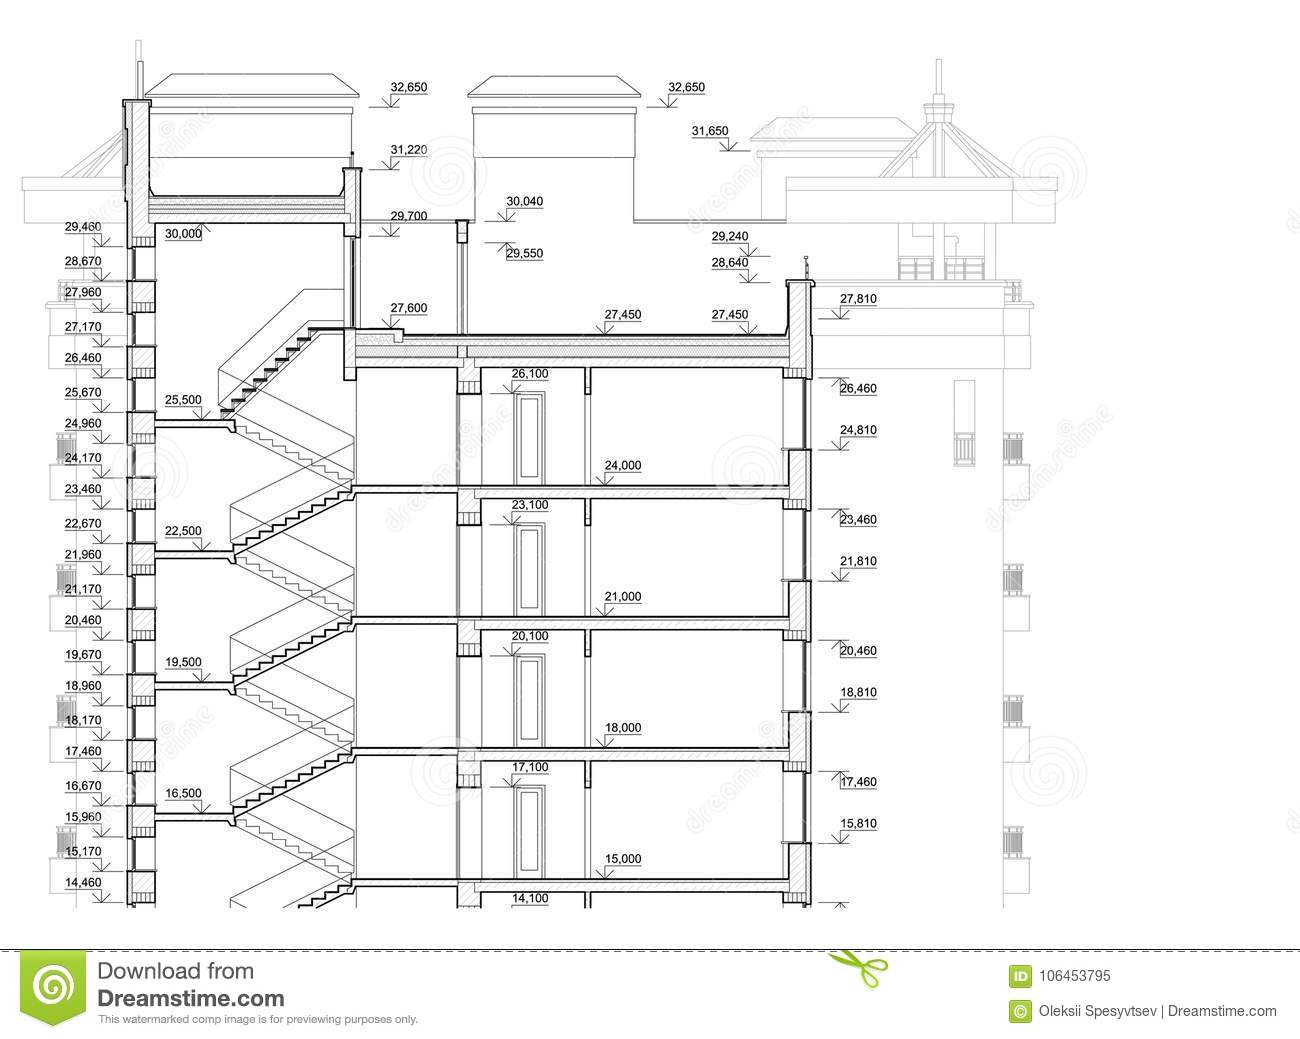 Detailed Architectural Plan Of Multistory Building Cross Section View Vector Blueprint Stock